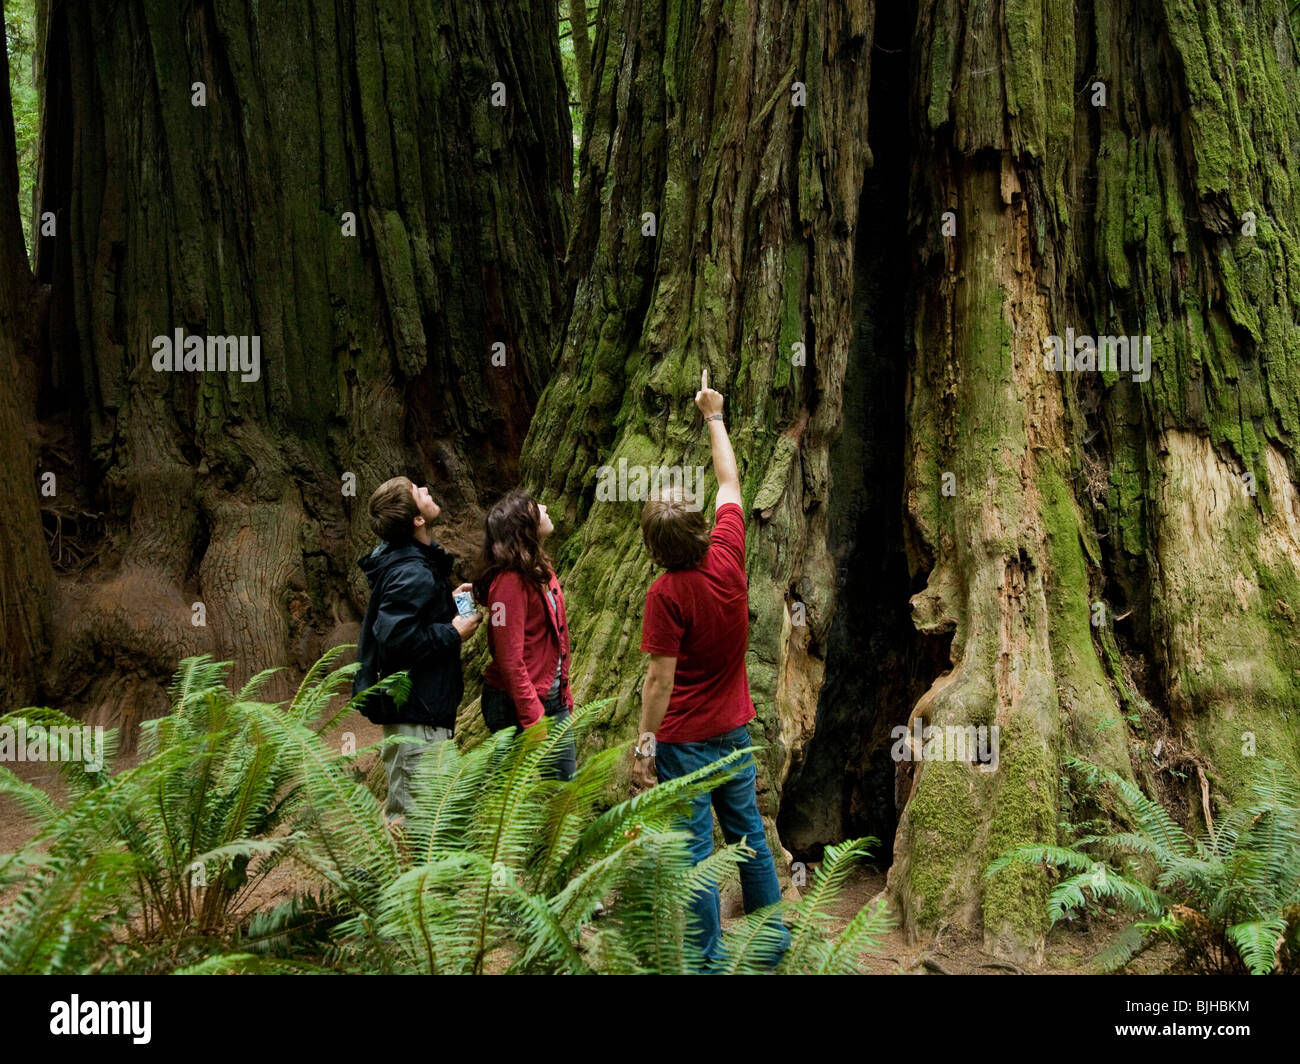 three people looking up at a giant redwood - Stock Image